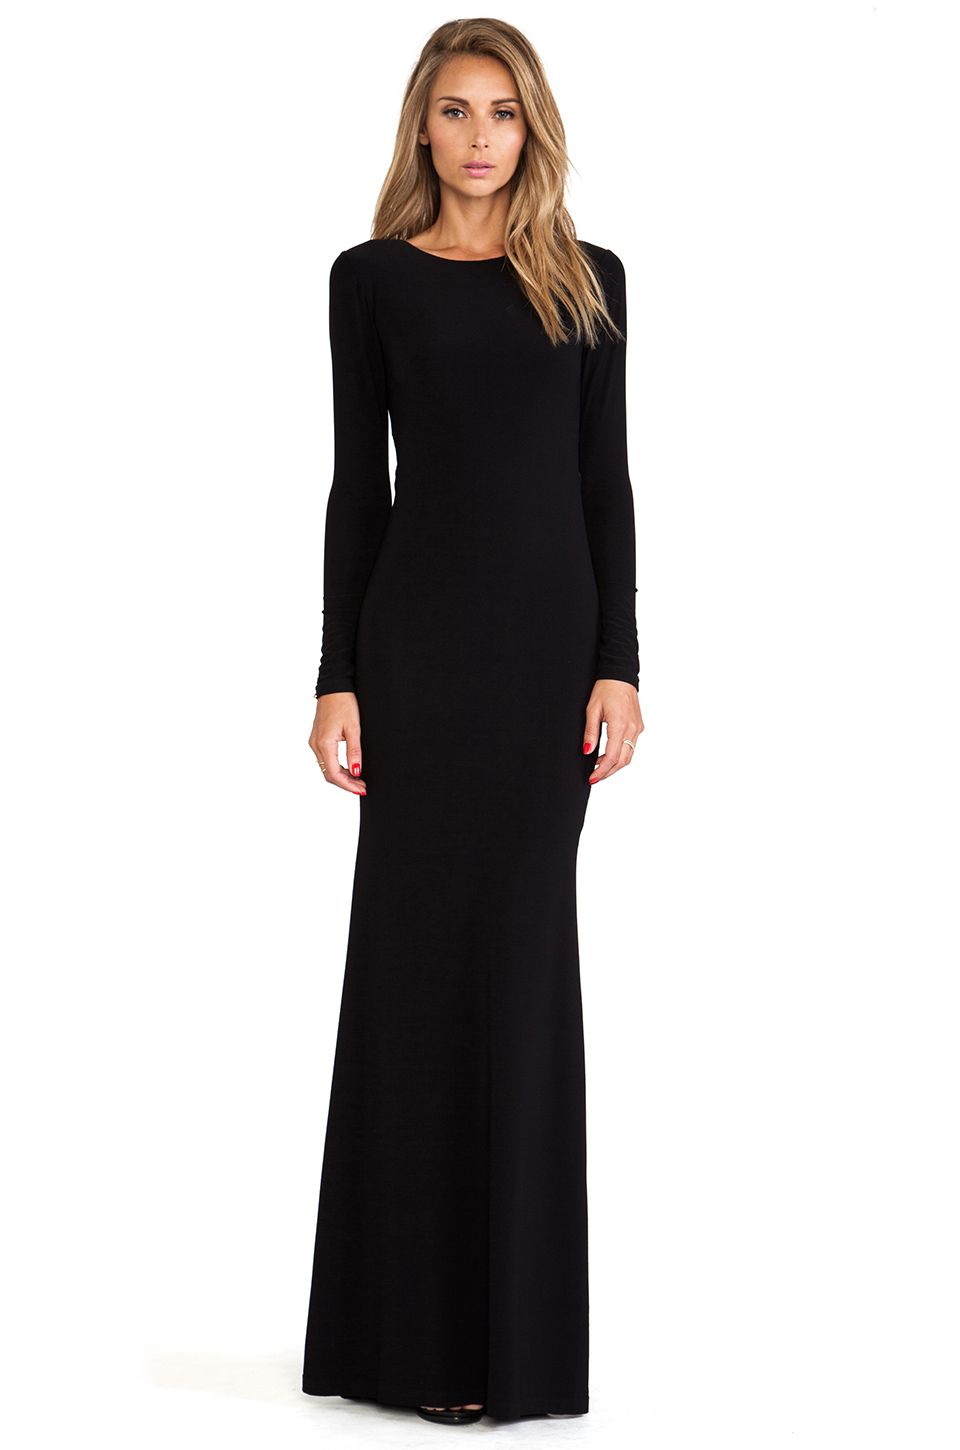 Alice olivia long sleeve maxi dress in black revolve my style